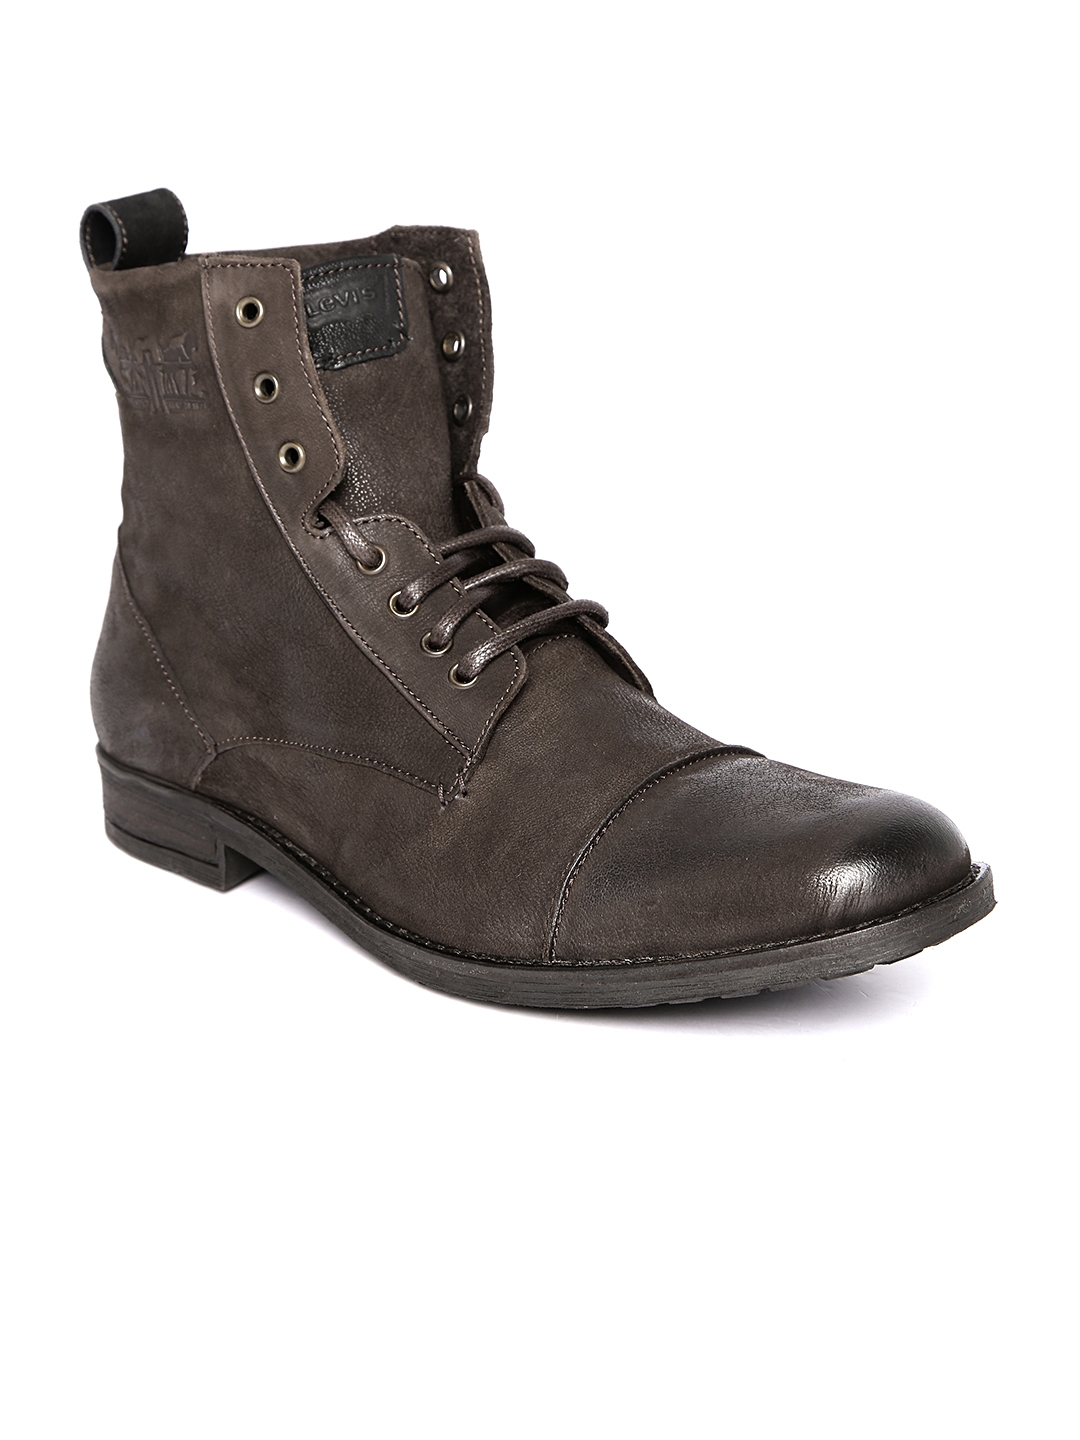 996fa8c41d943 Buy Levis Men Coffee Brown Leather Boots - Casual Shoes for Men ...